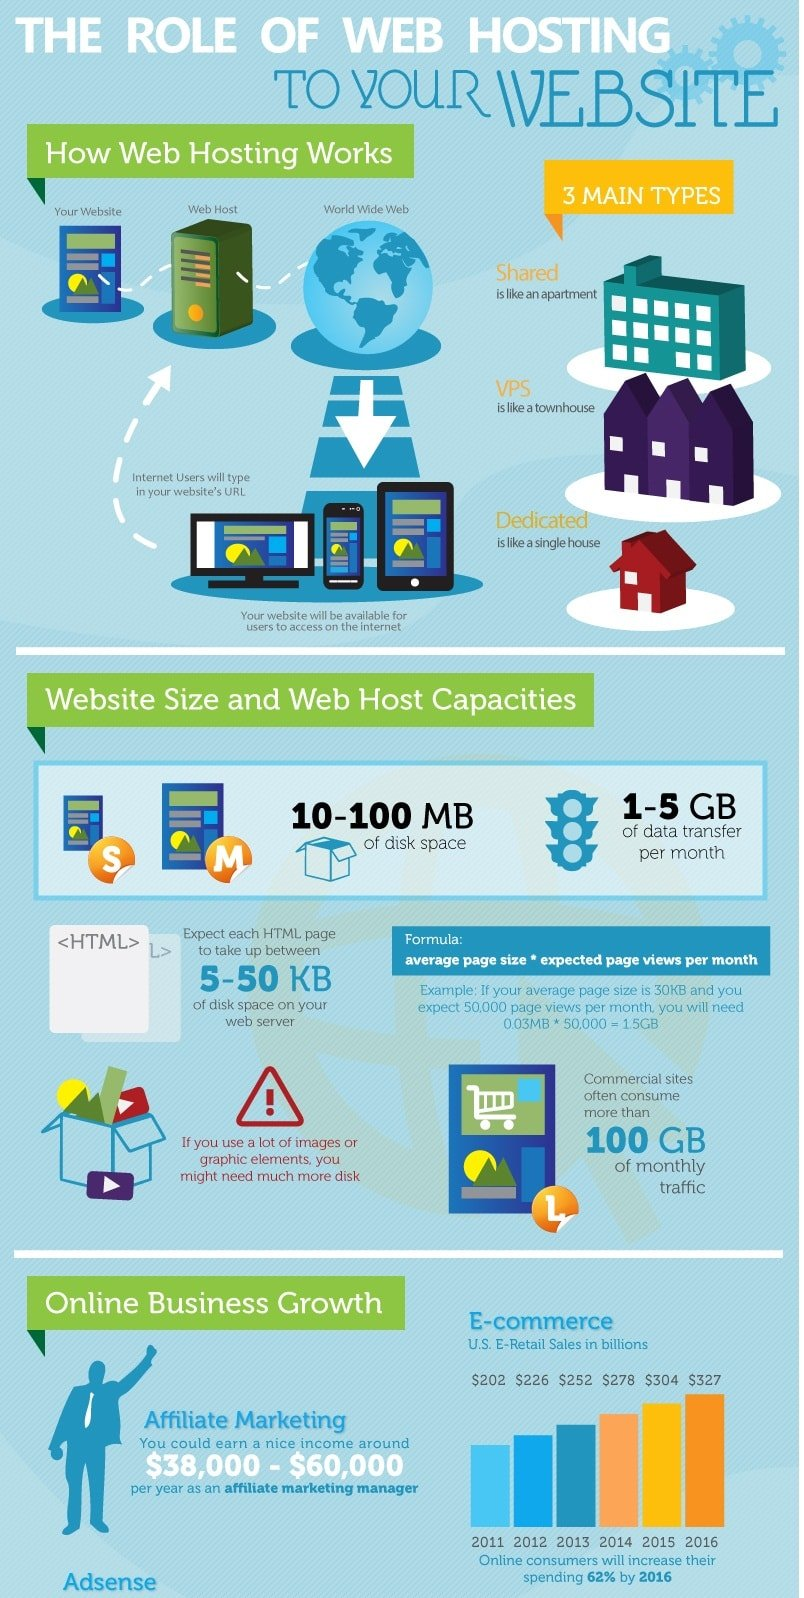 Infographic The Rapid Growth Of Web Hosting Services. Amazon Store Card Offers Tdcj Human Resources. Www Investor Connect Com Star Wars Darth Bane. Setting Up Secure Email San Diego Seo Company. Little School Of Music Advantage Dental Group. Ashford University Online Accreditation. Is Gap Insurance Required Toyota Camry Tampa. 5 Star Hotels In Sydney Insurance Call Center. Professional Retail Outlet Services